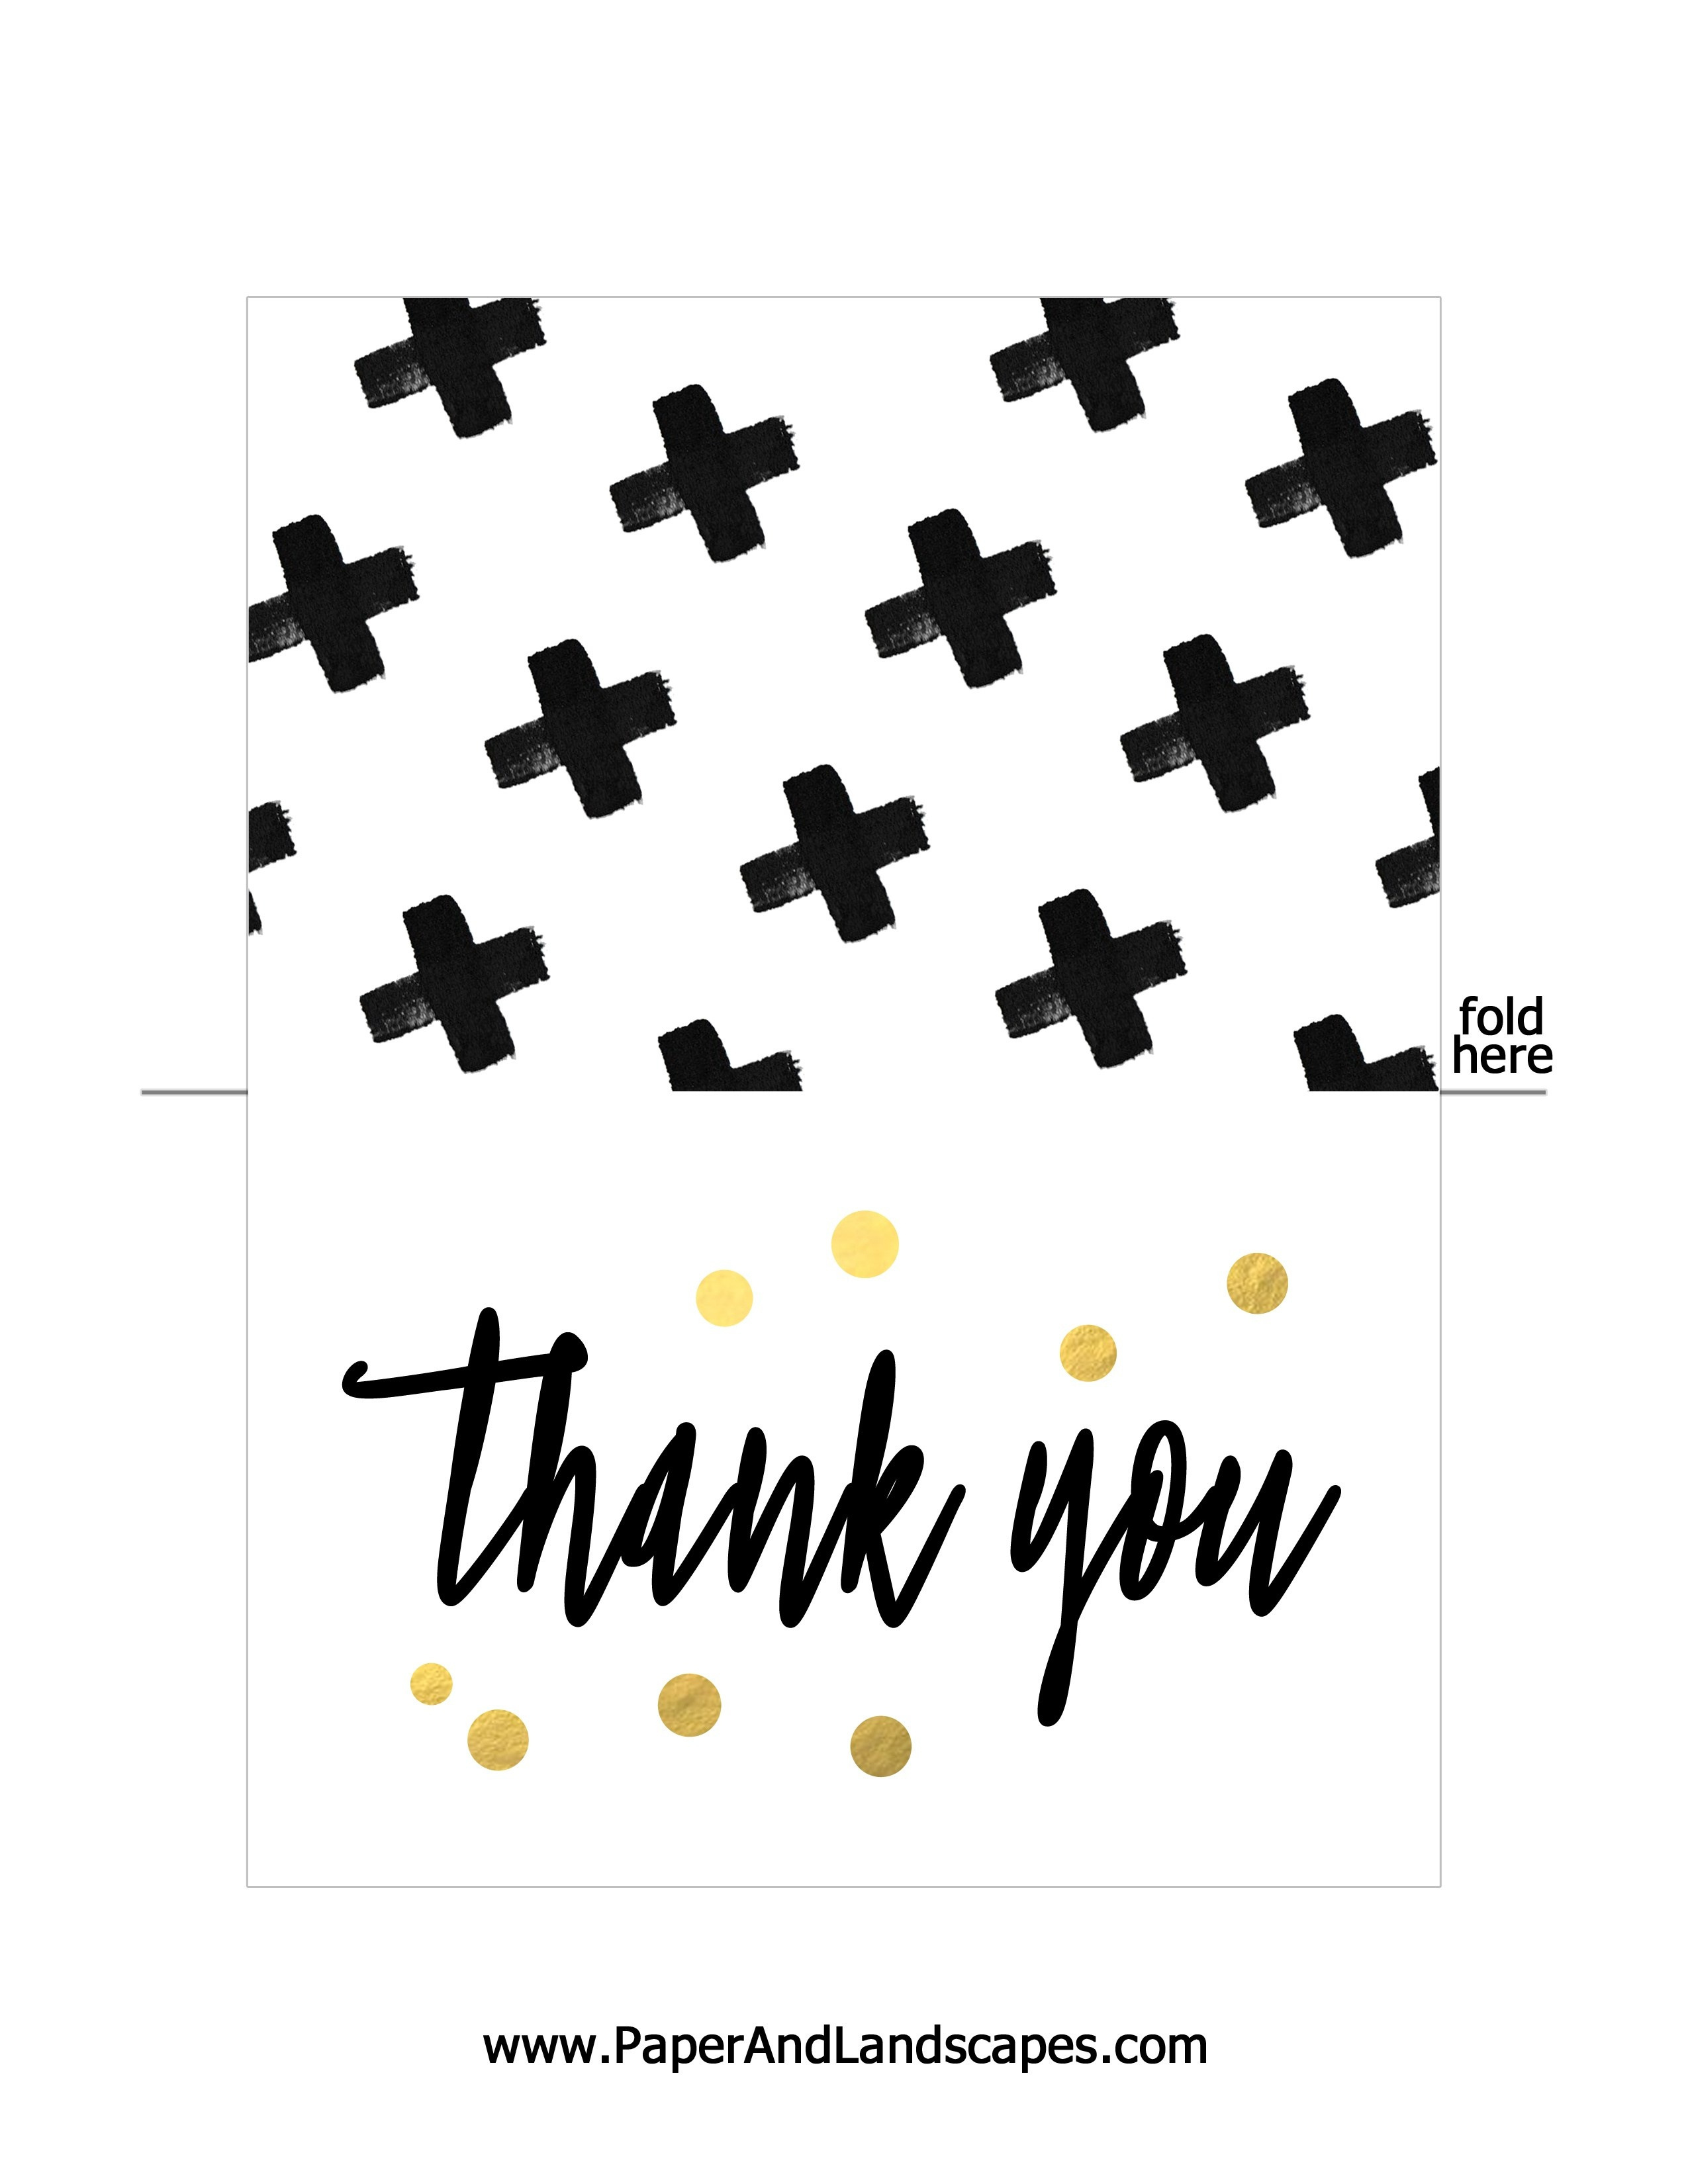 Free Printable Thank You Cards - Paper And Landscapes - Free Printable Thank You